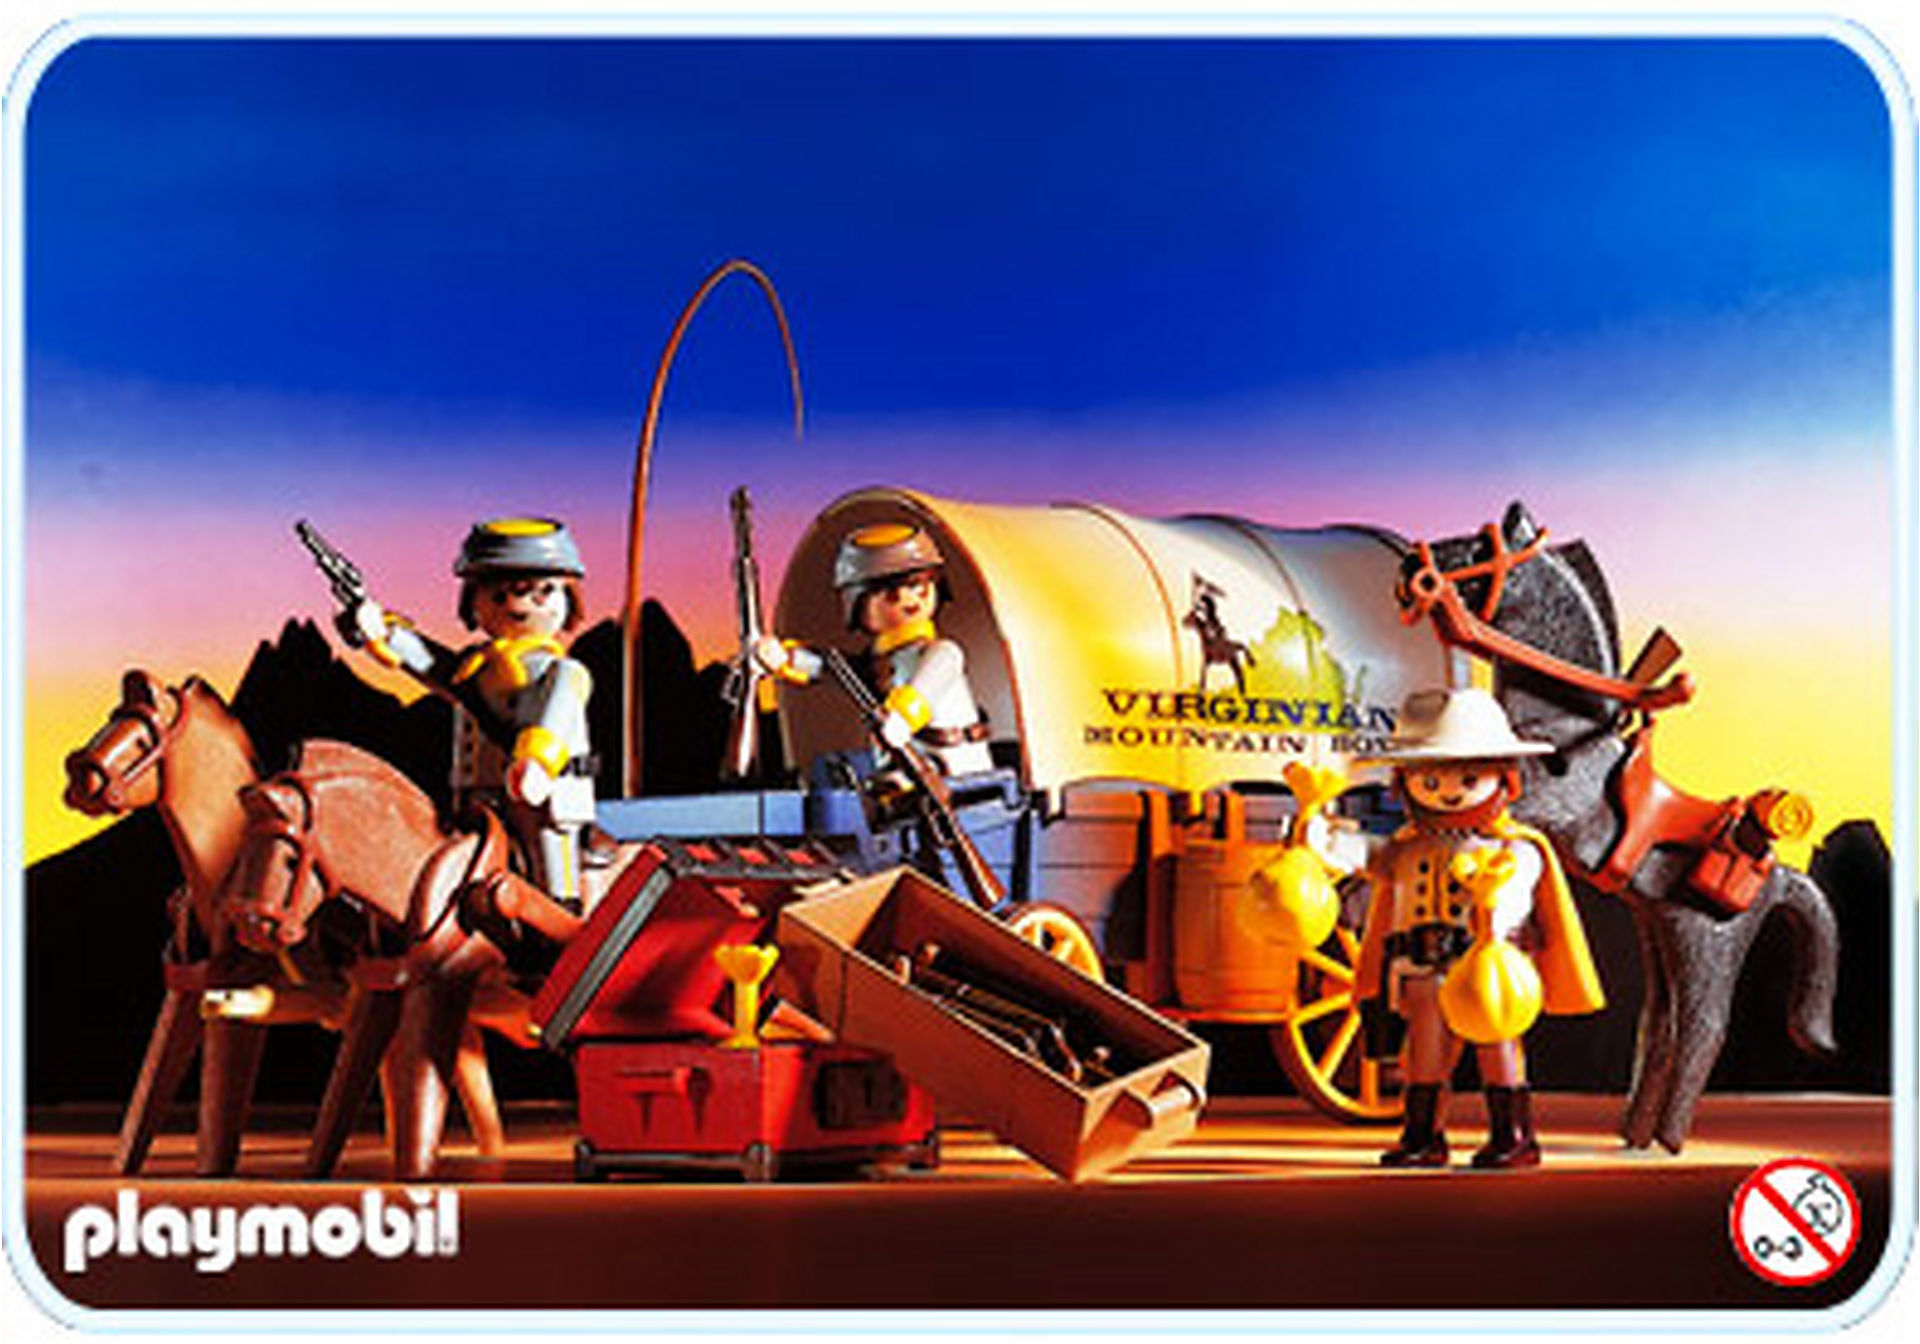 http://media.playmobil.com/i/playmobil/3785-A_product_detail/Südstaatler / Planwagen